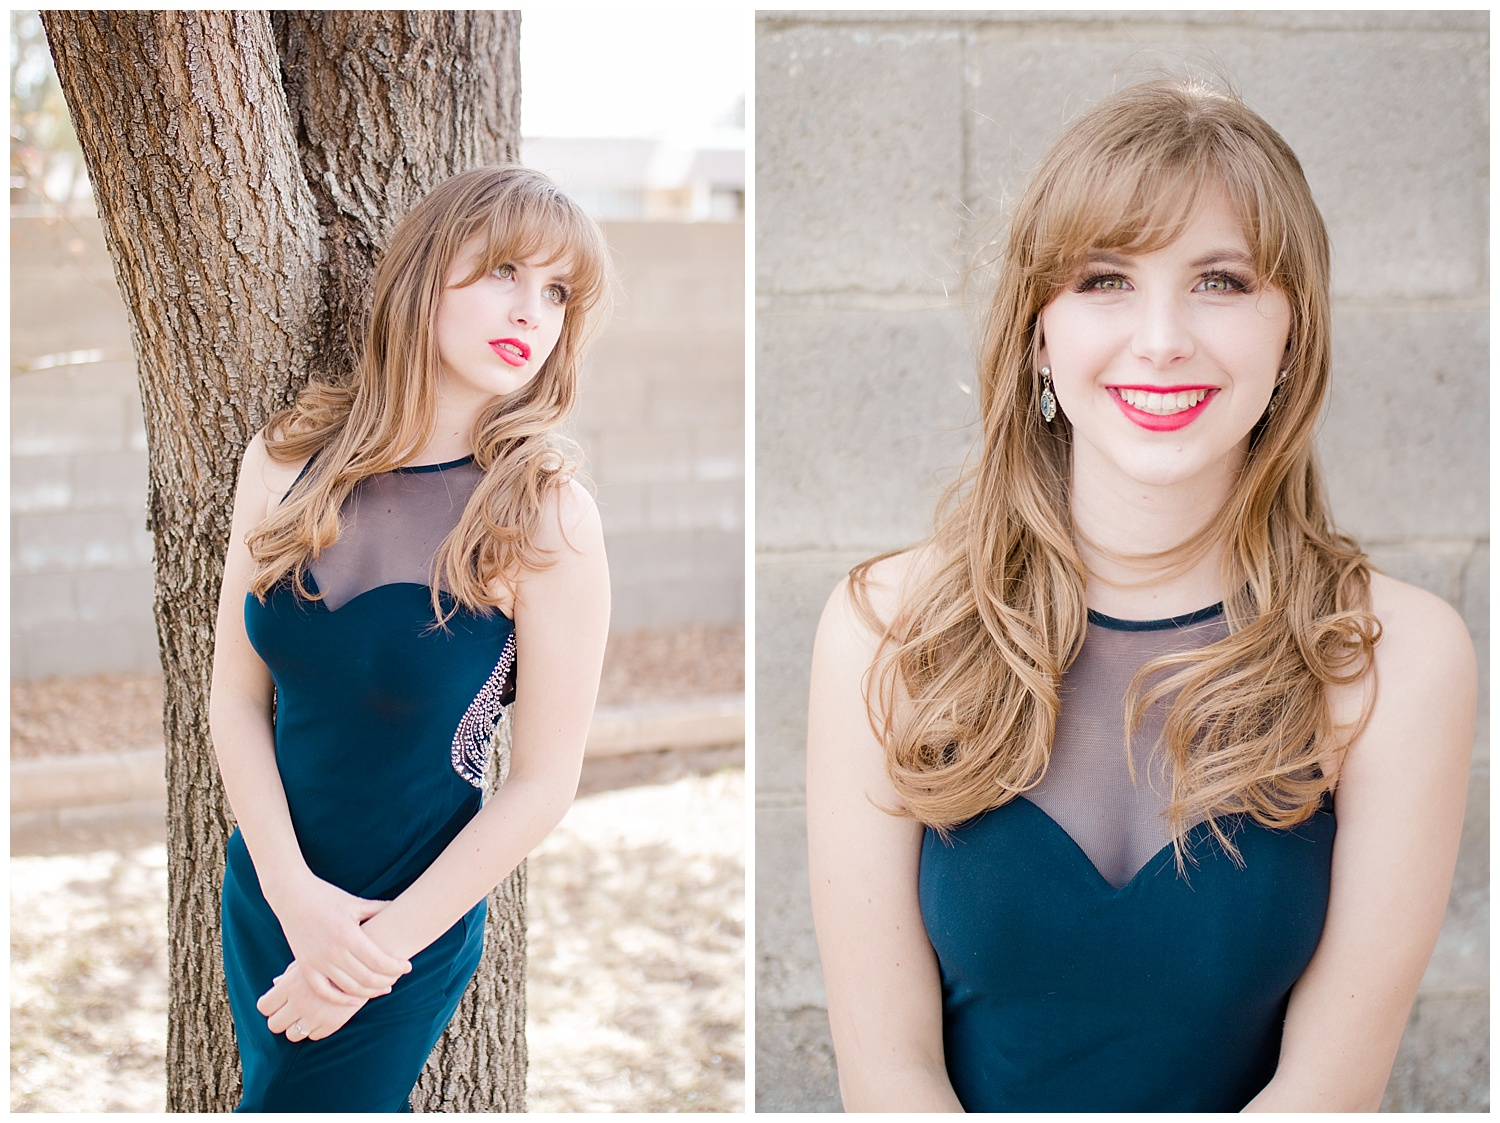 Senior Spokesmodel Team styled shoot. Red carpet hair, make up and dresses. Blue dress and red heels.